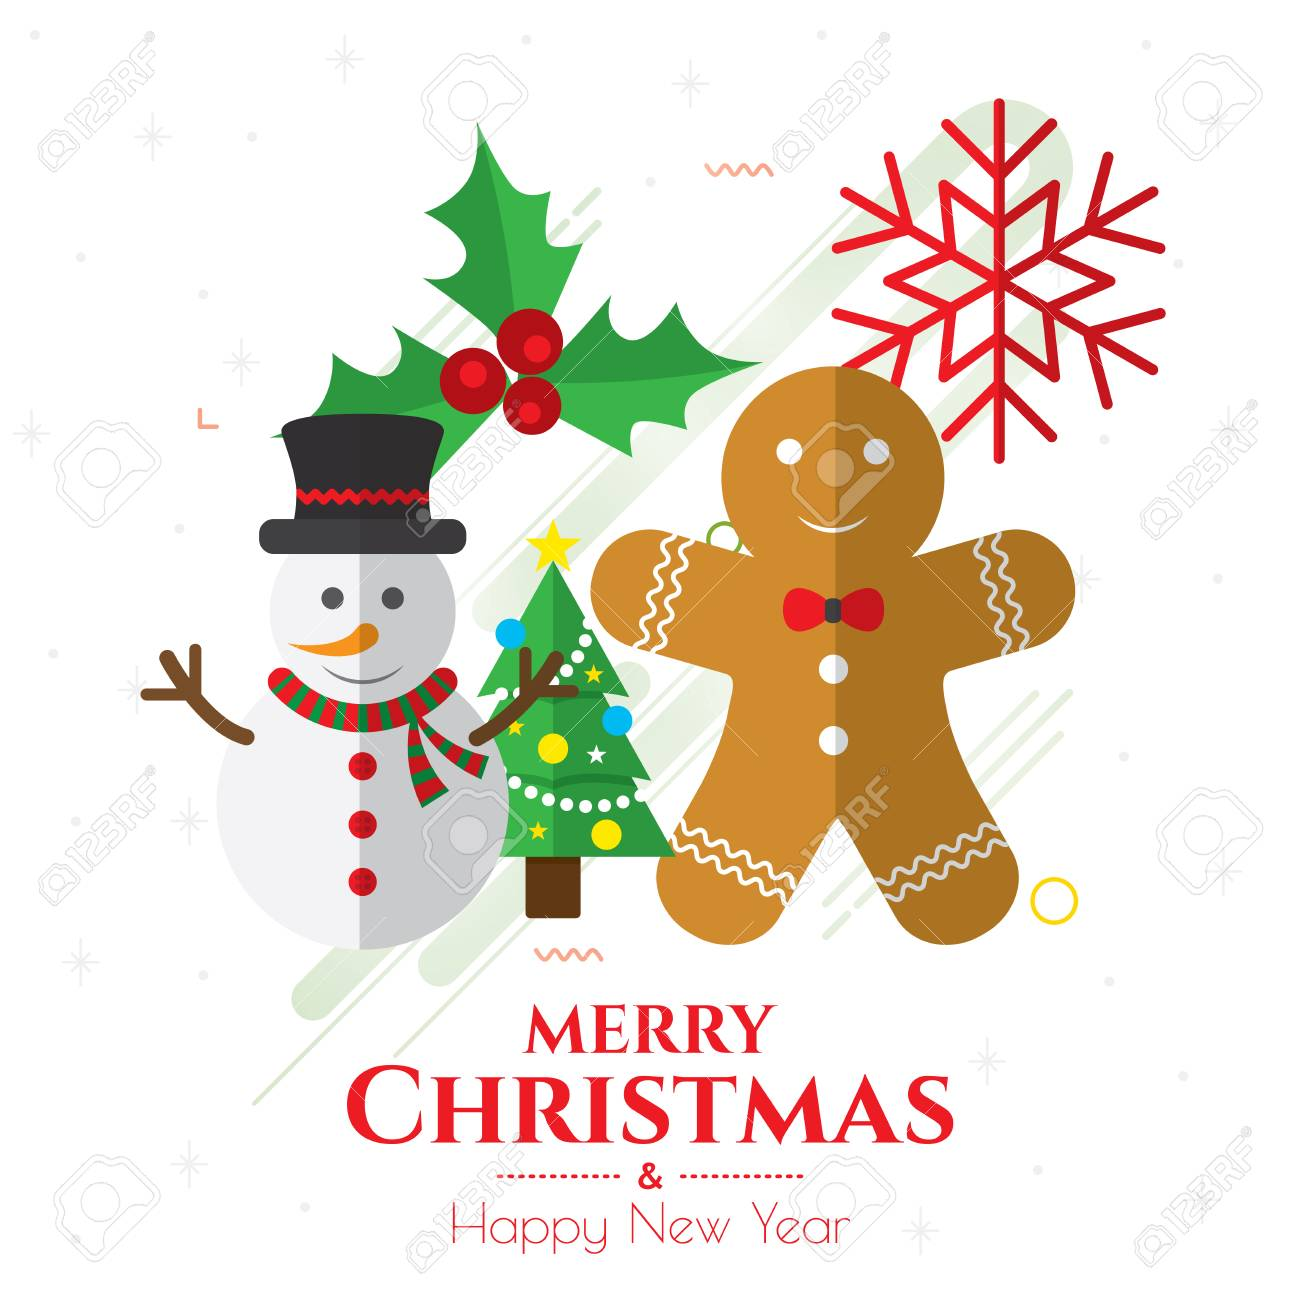 merry christmas and happy new year banner royalty free cliparts vectors and stock illustration image 91463210 merry christmas and happy new year banner